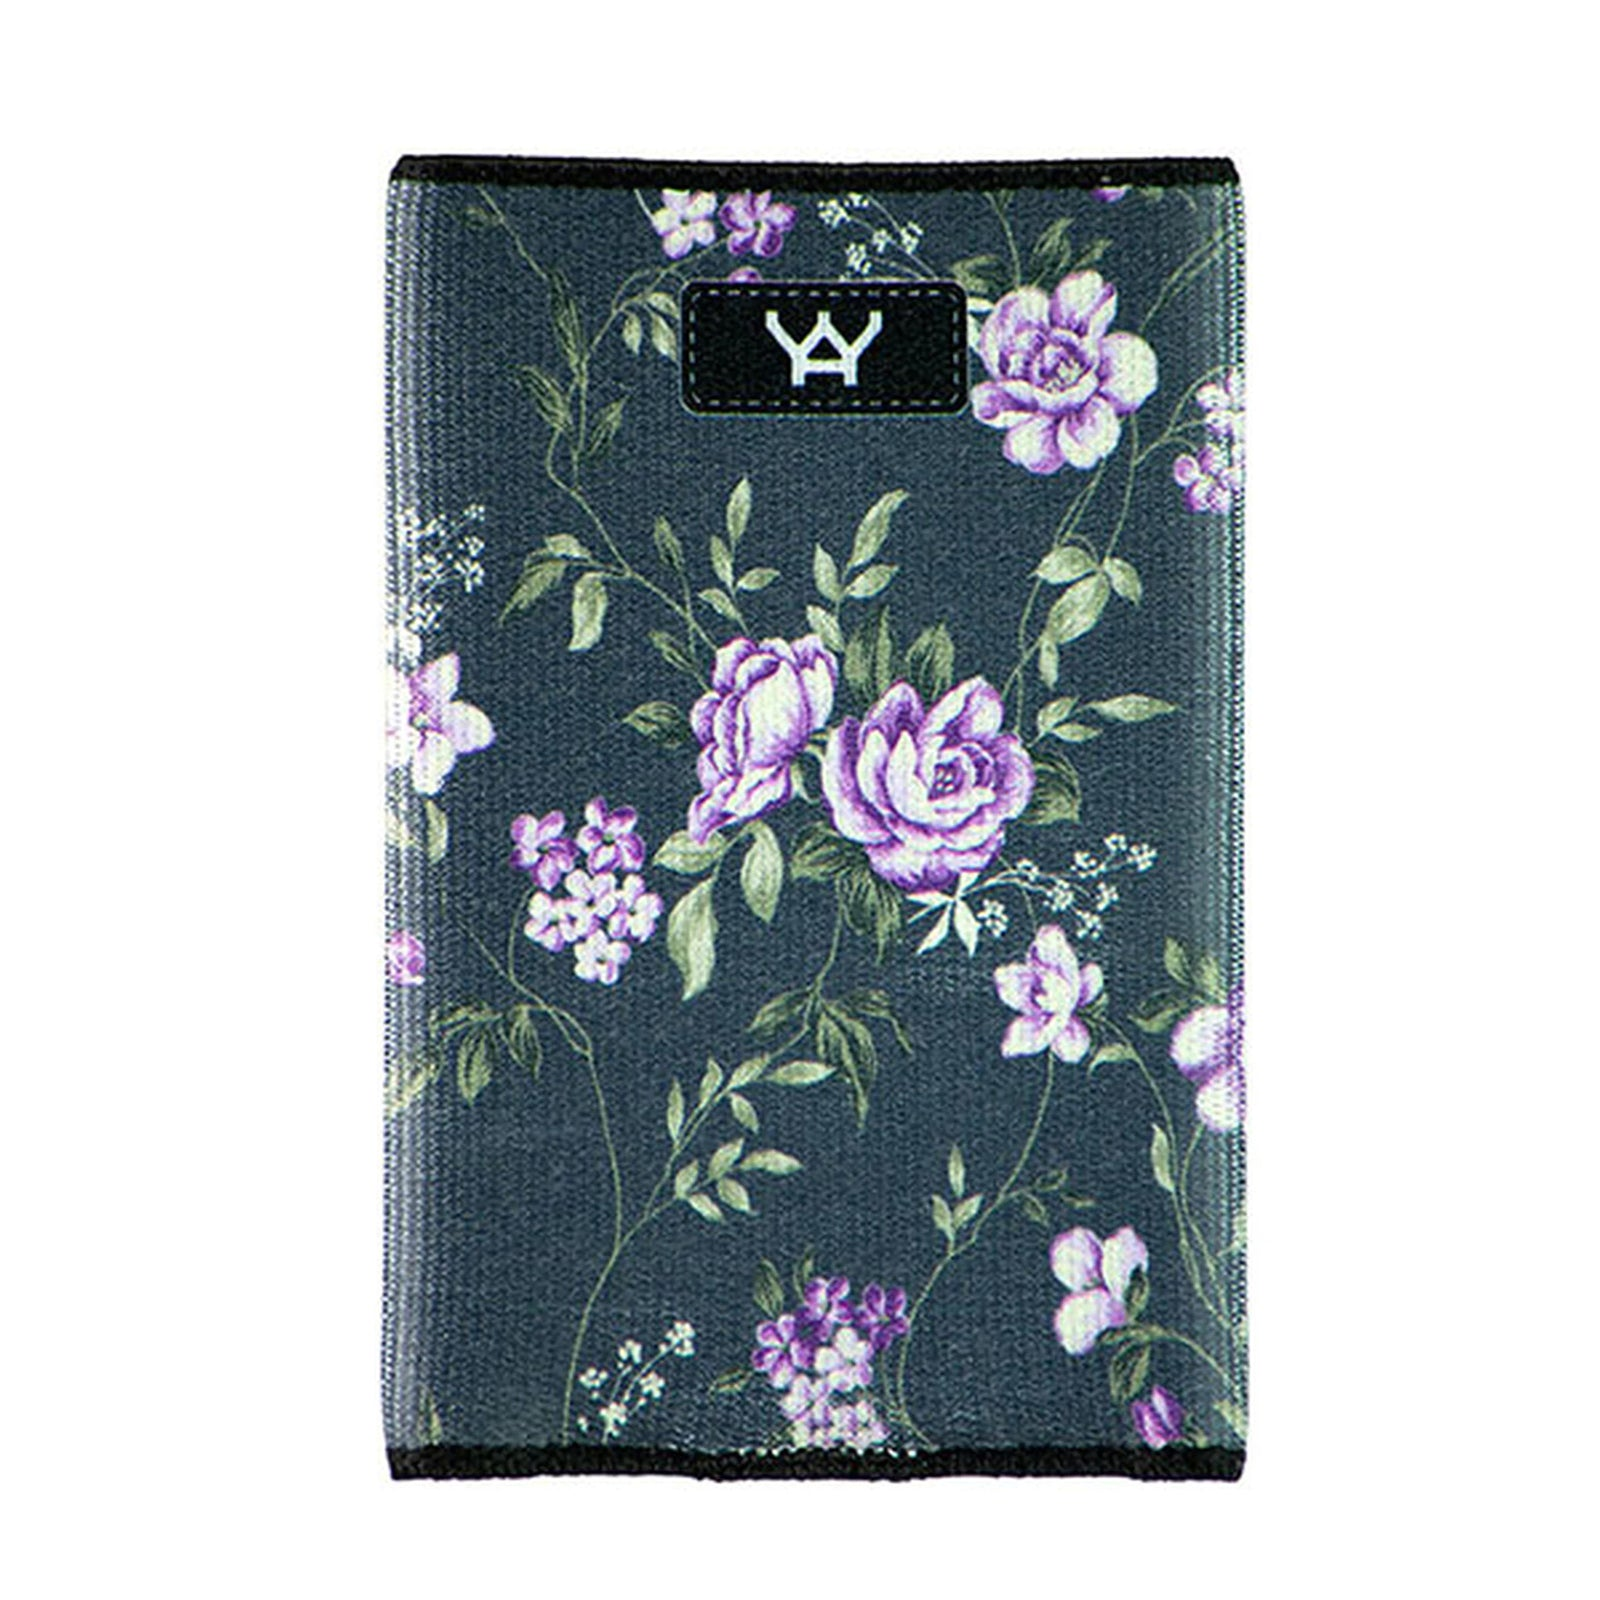 YaYwallet, Credit Card Holder, Slim Wallet